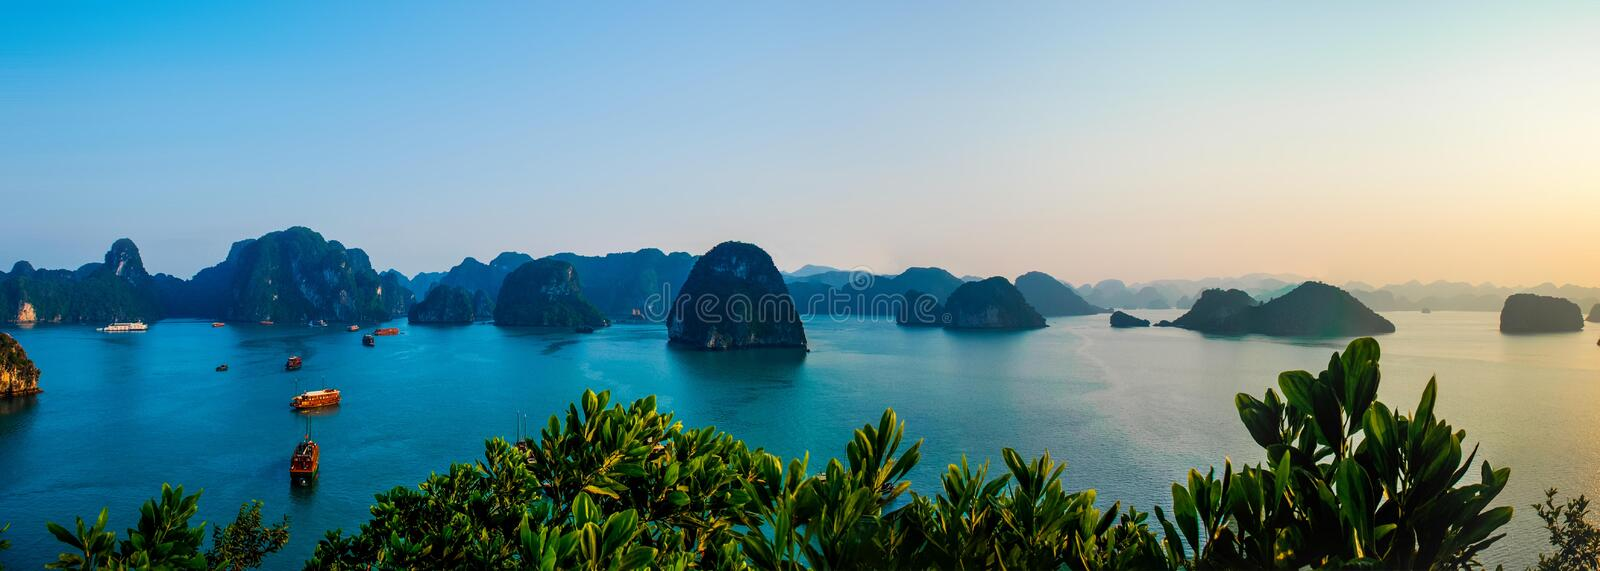 Panoramic view of boats floating in the tranquil waters of Halong Bay Vietnam at sunset stock photo